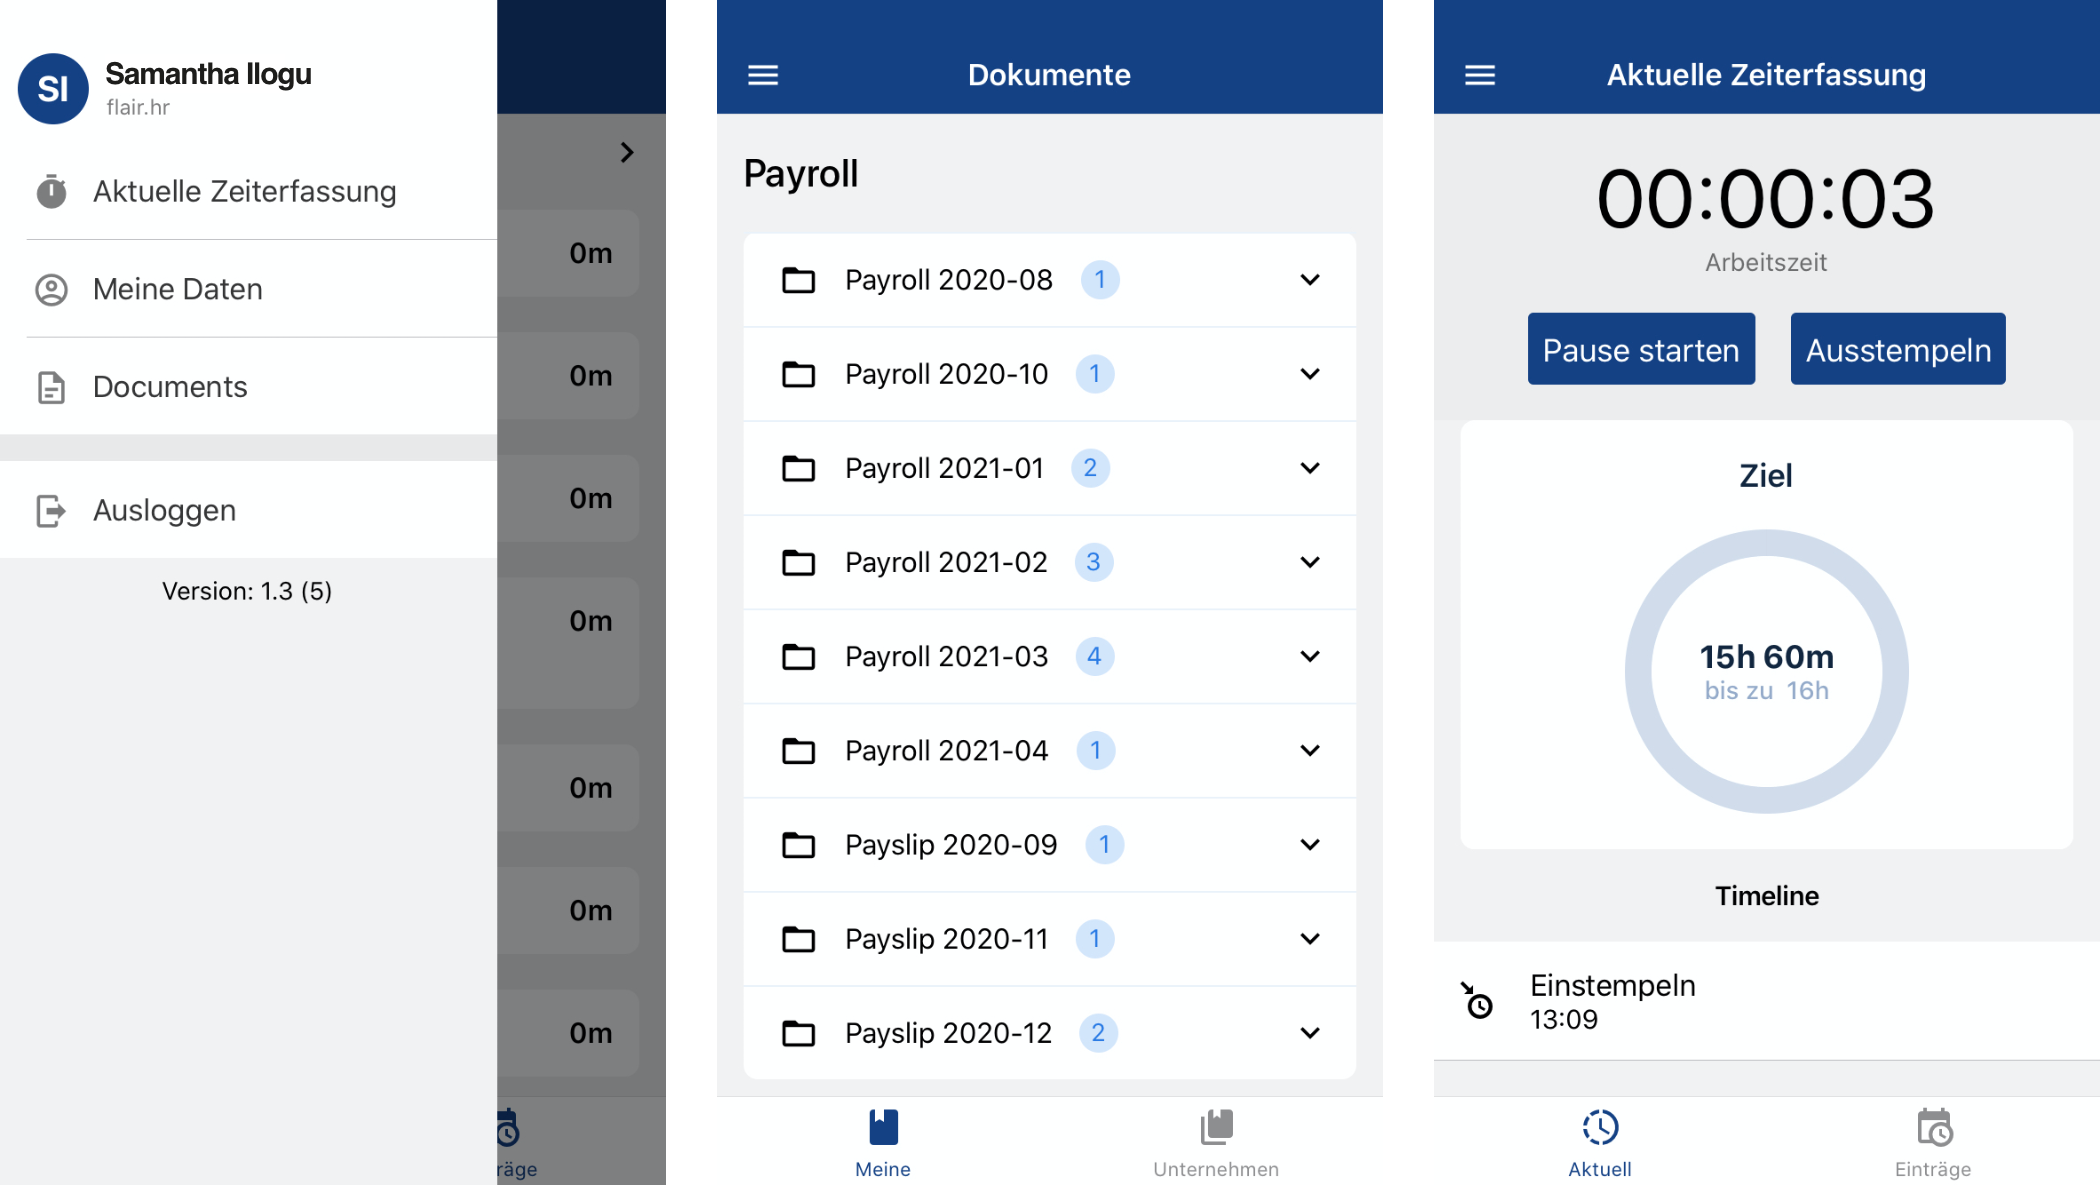 Amongst many other things flair's employee HUB enables users to plan their shifts & absences, track time, access documents and request data changes. Our manager dashboard is perfect for managers and team leaders. Access employee HUB from a mobile now!